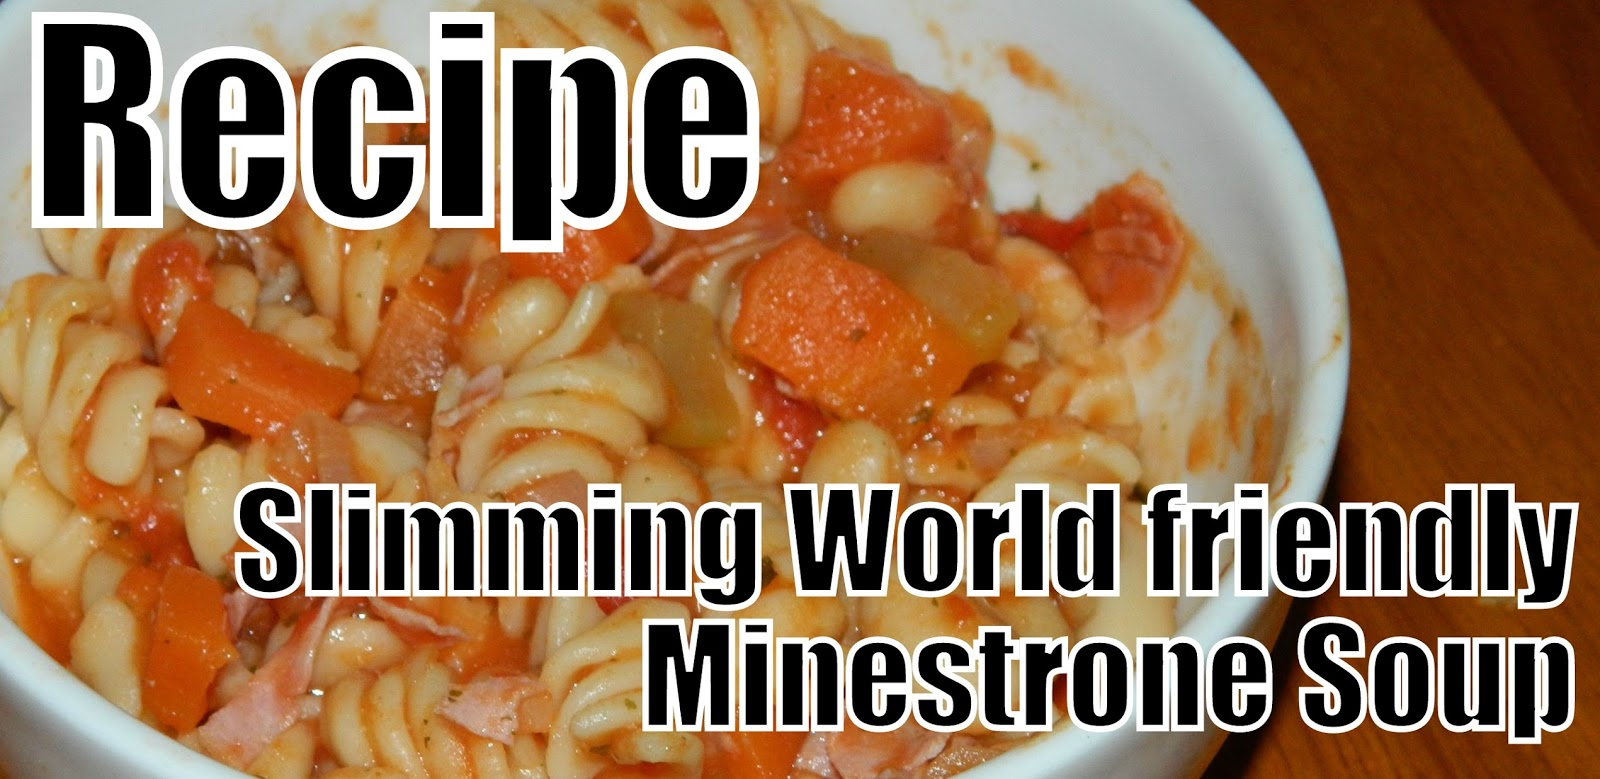 recipe, minestrone soup, slimming world